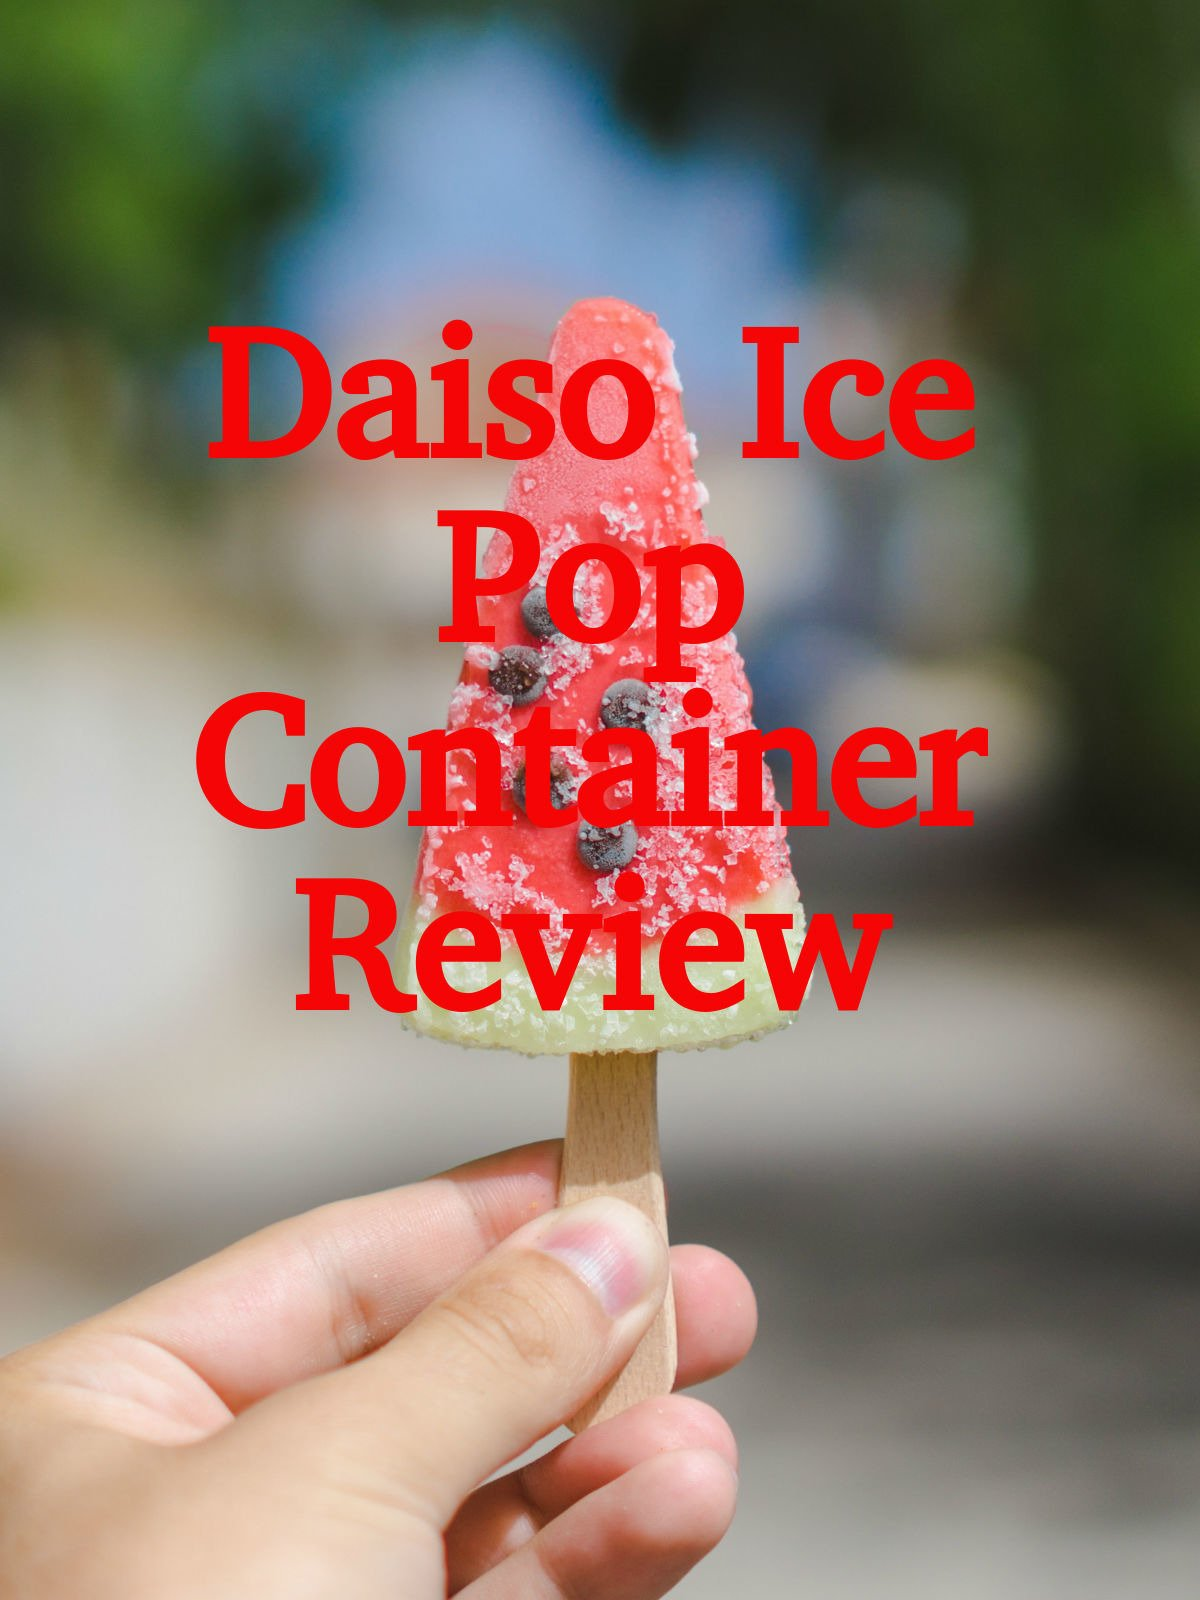 Review: Daiso Ice Pop Container Review